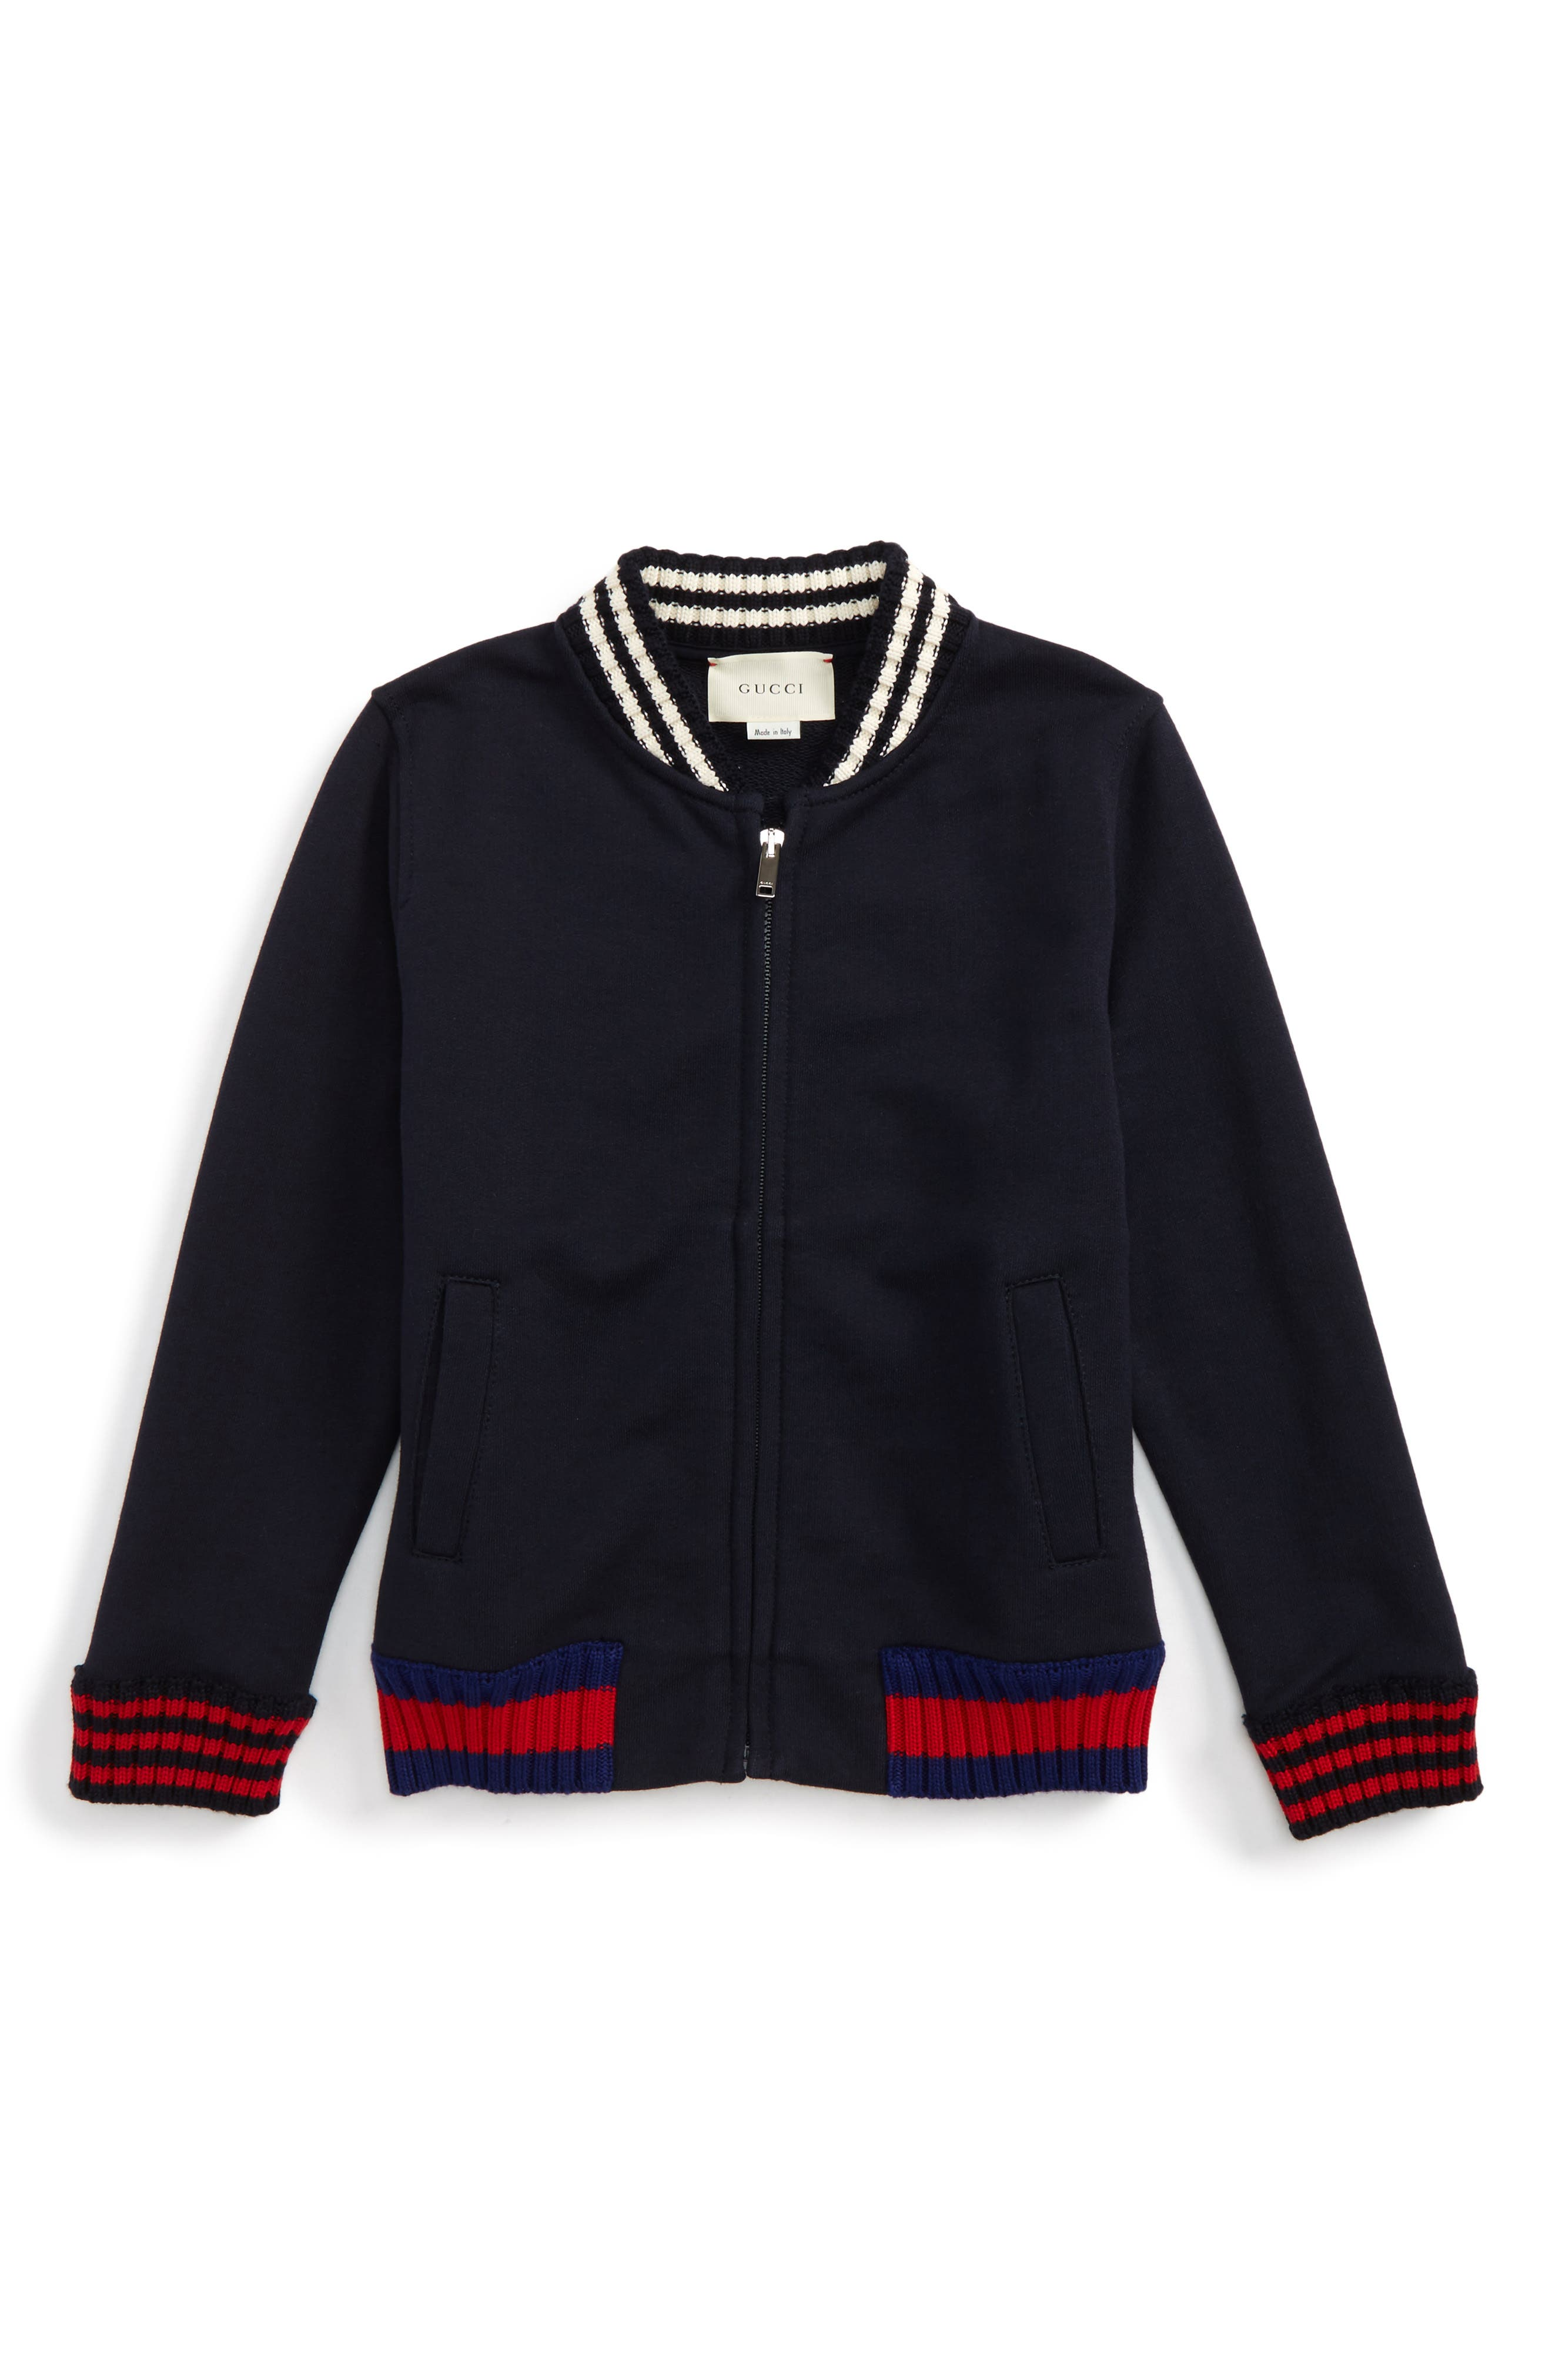 GUCCI Rib Knit Trim Front Zip Sweatshirt